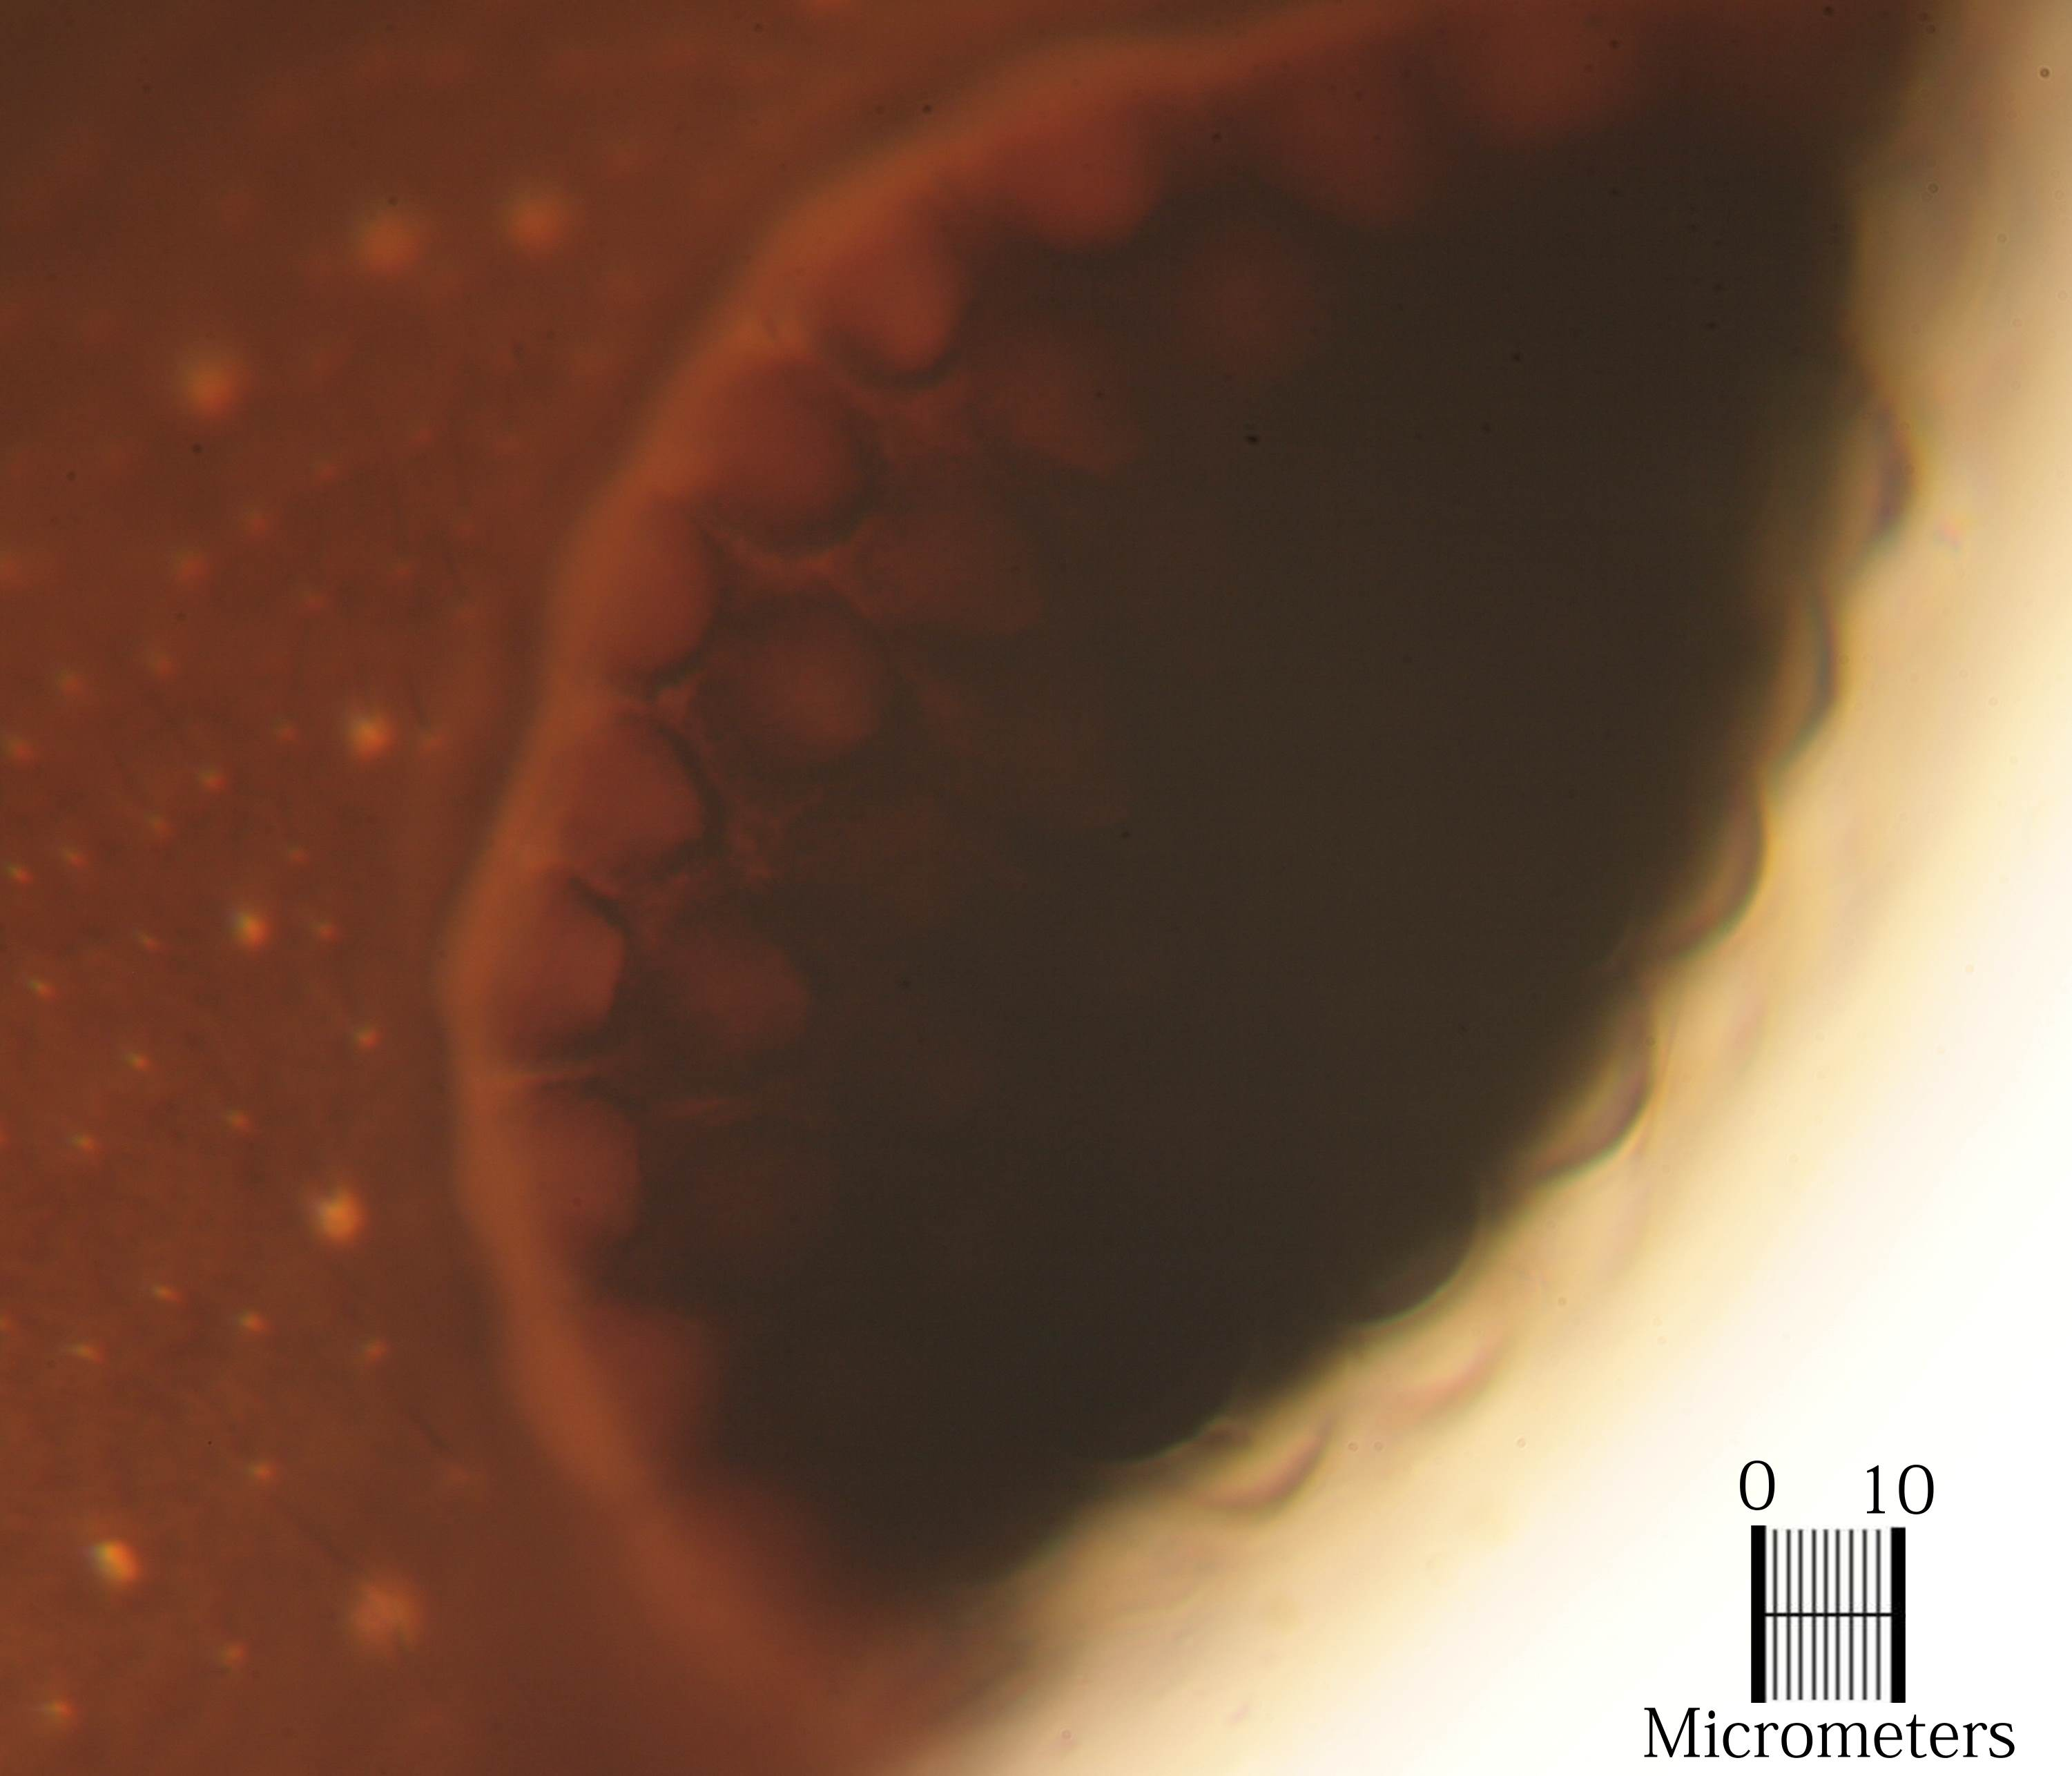 Ant Millie's eye with 100x oil immersion objective and a 10 micron scale